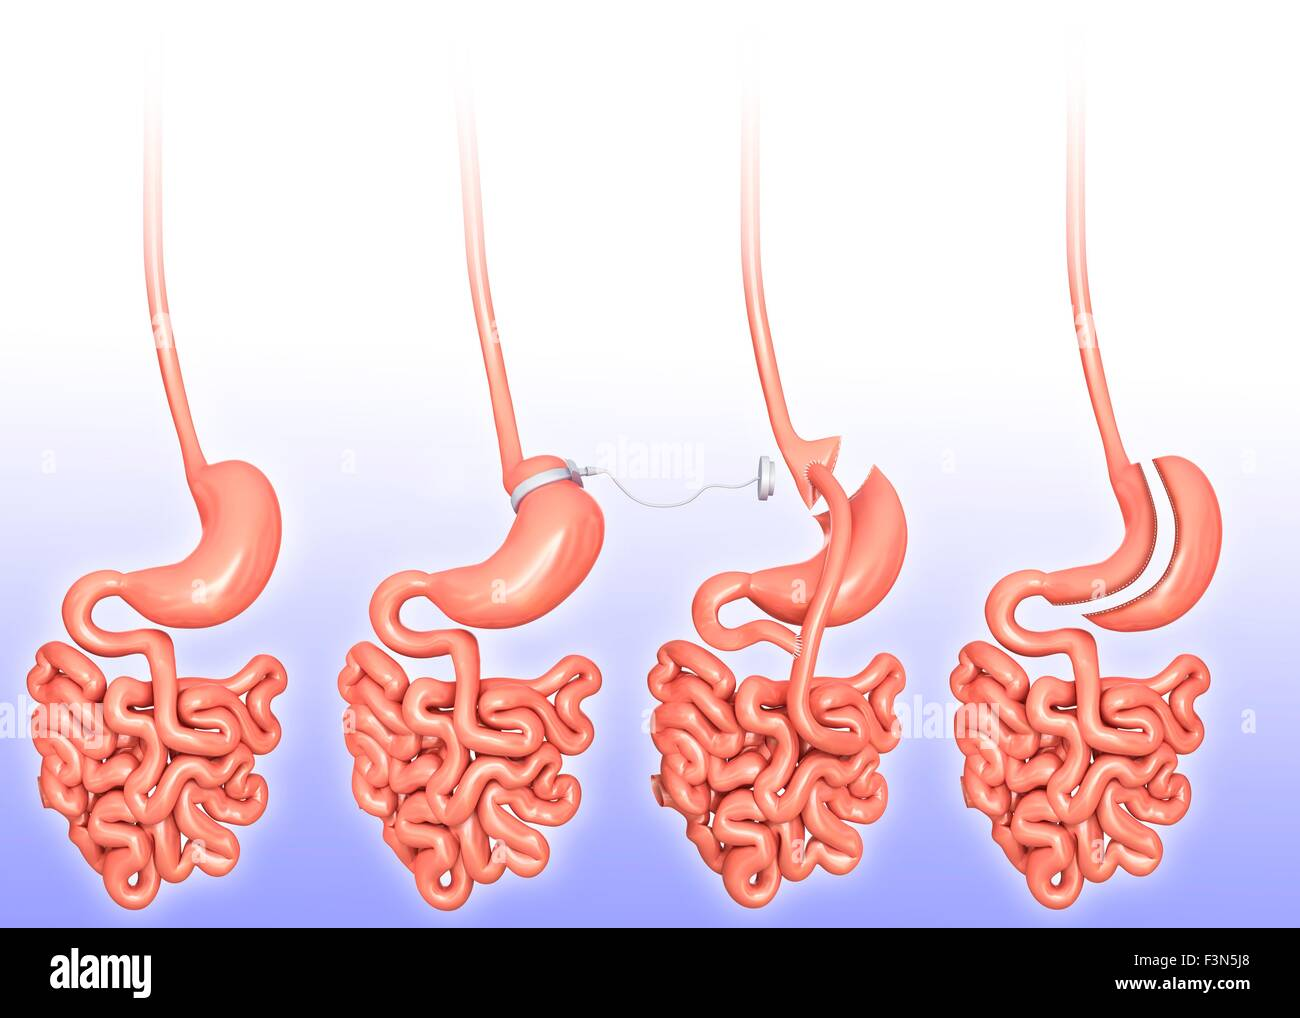 Bariatric Surgery Stockfotos & Bariatric Surgery Bilder - Alamy